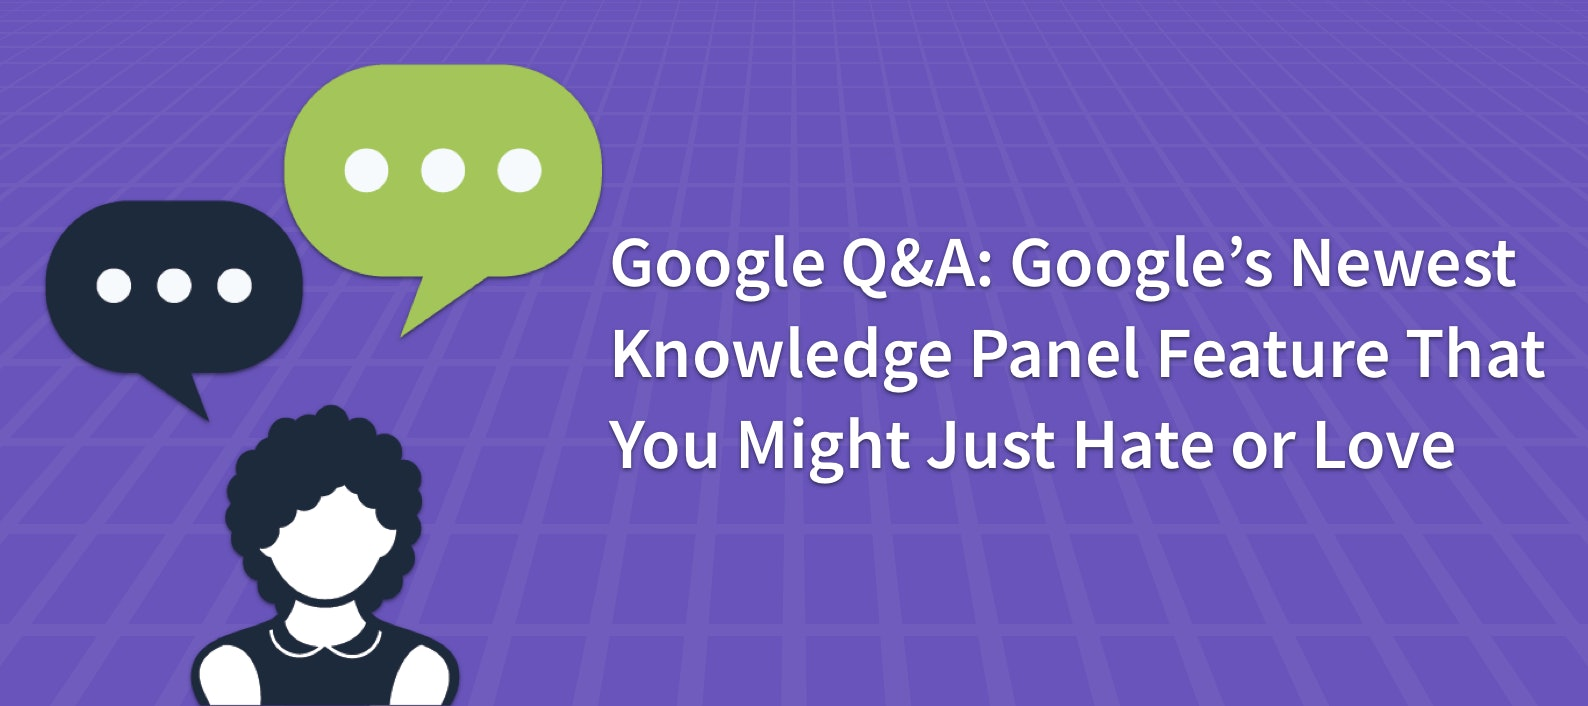 Google Q&A: Google's Newest Knowledge Panel Feature That You Might Just Hate or Love